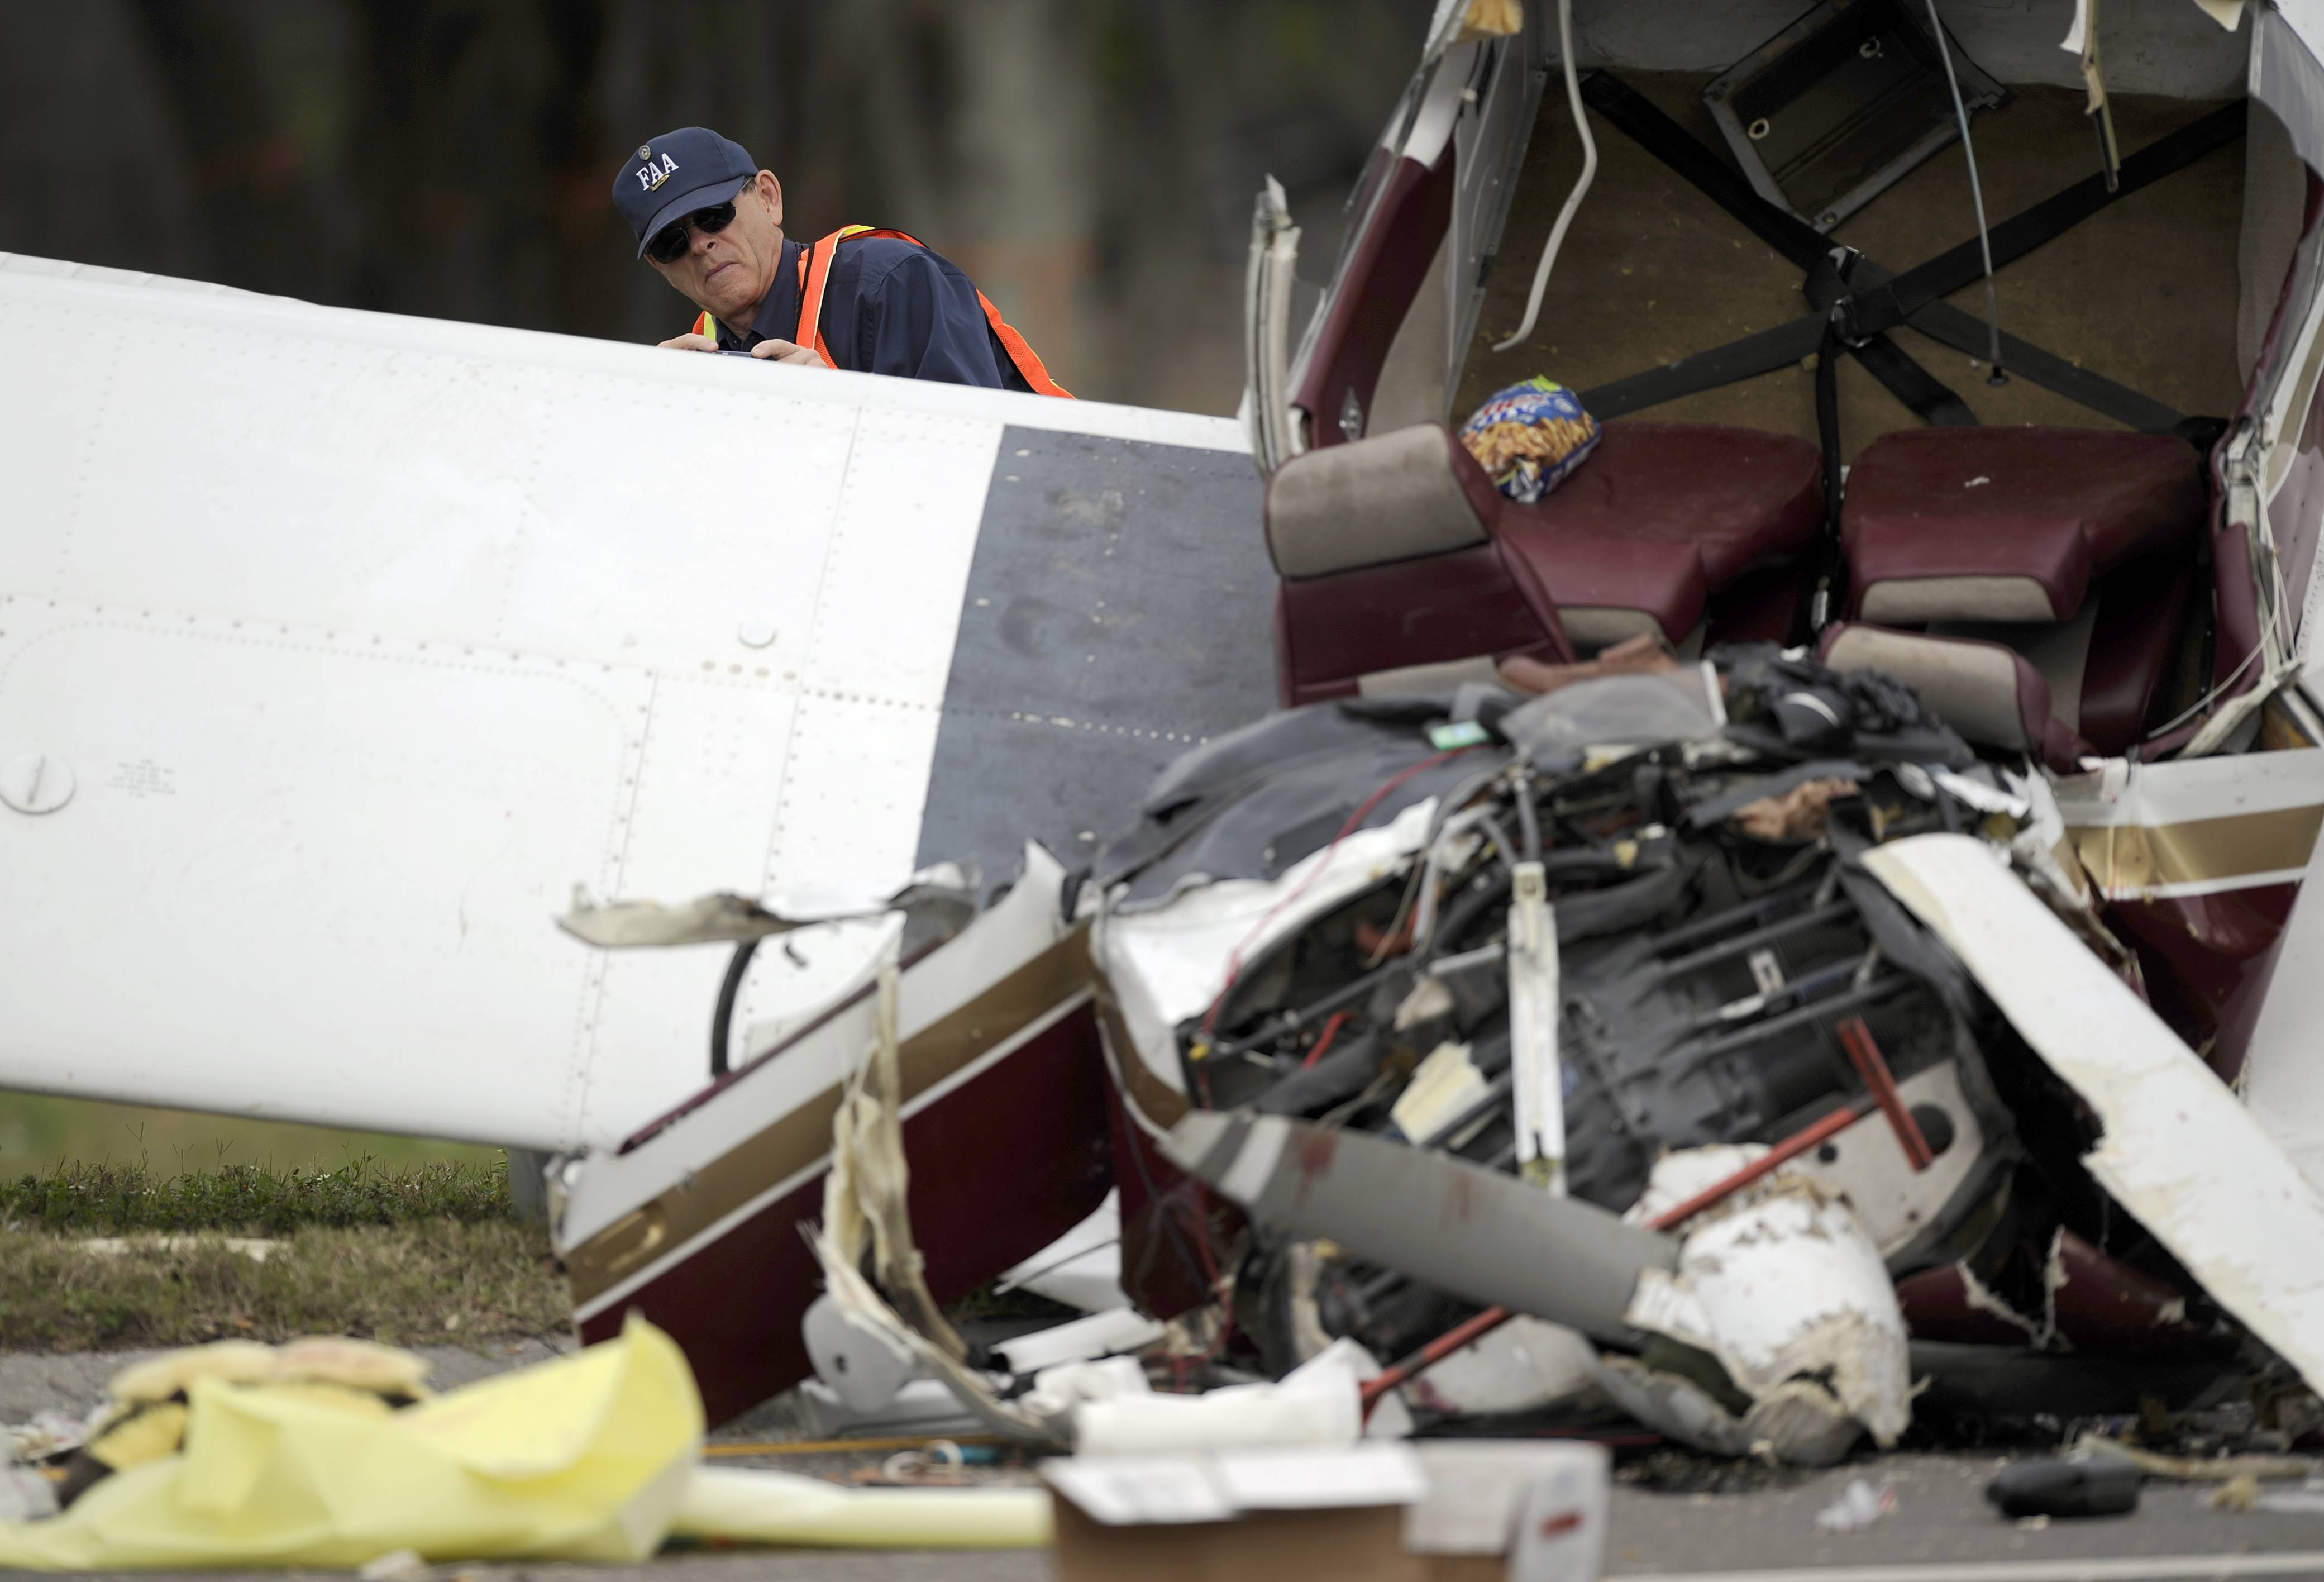 This is the wreckage of a small passenger plane which crashed about 4 a.m. Saturday near Clearwater, Fla.